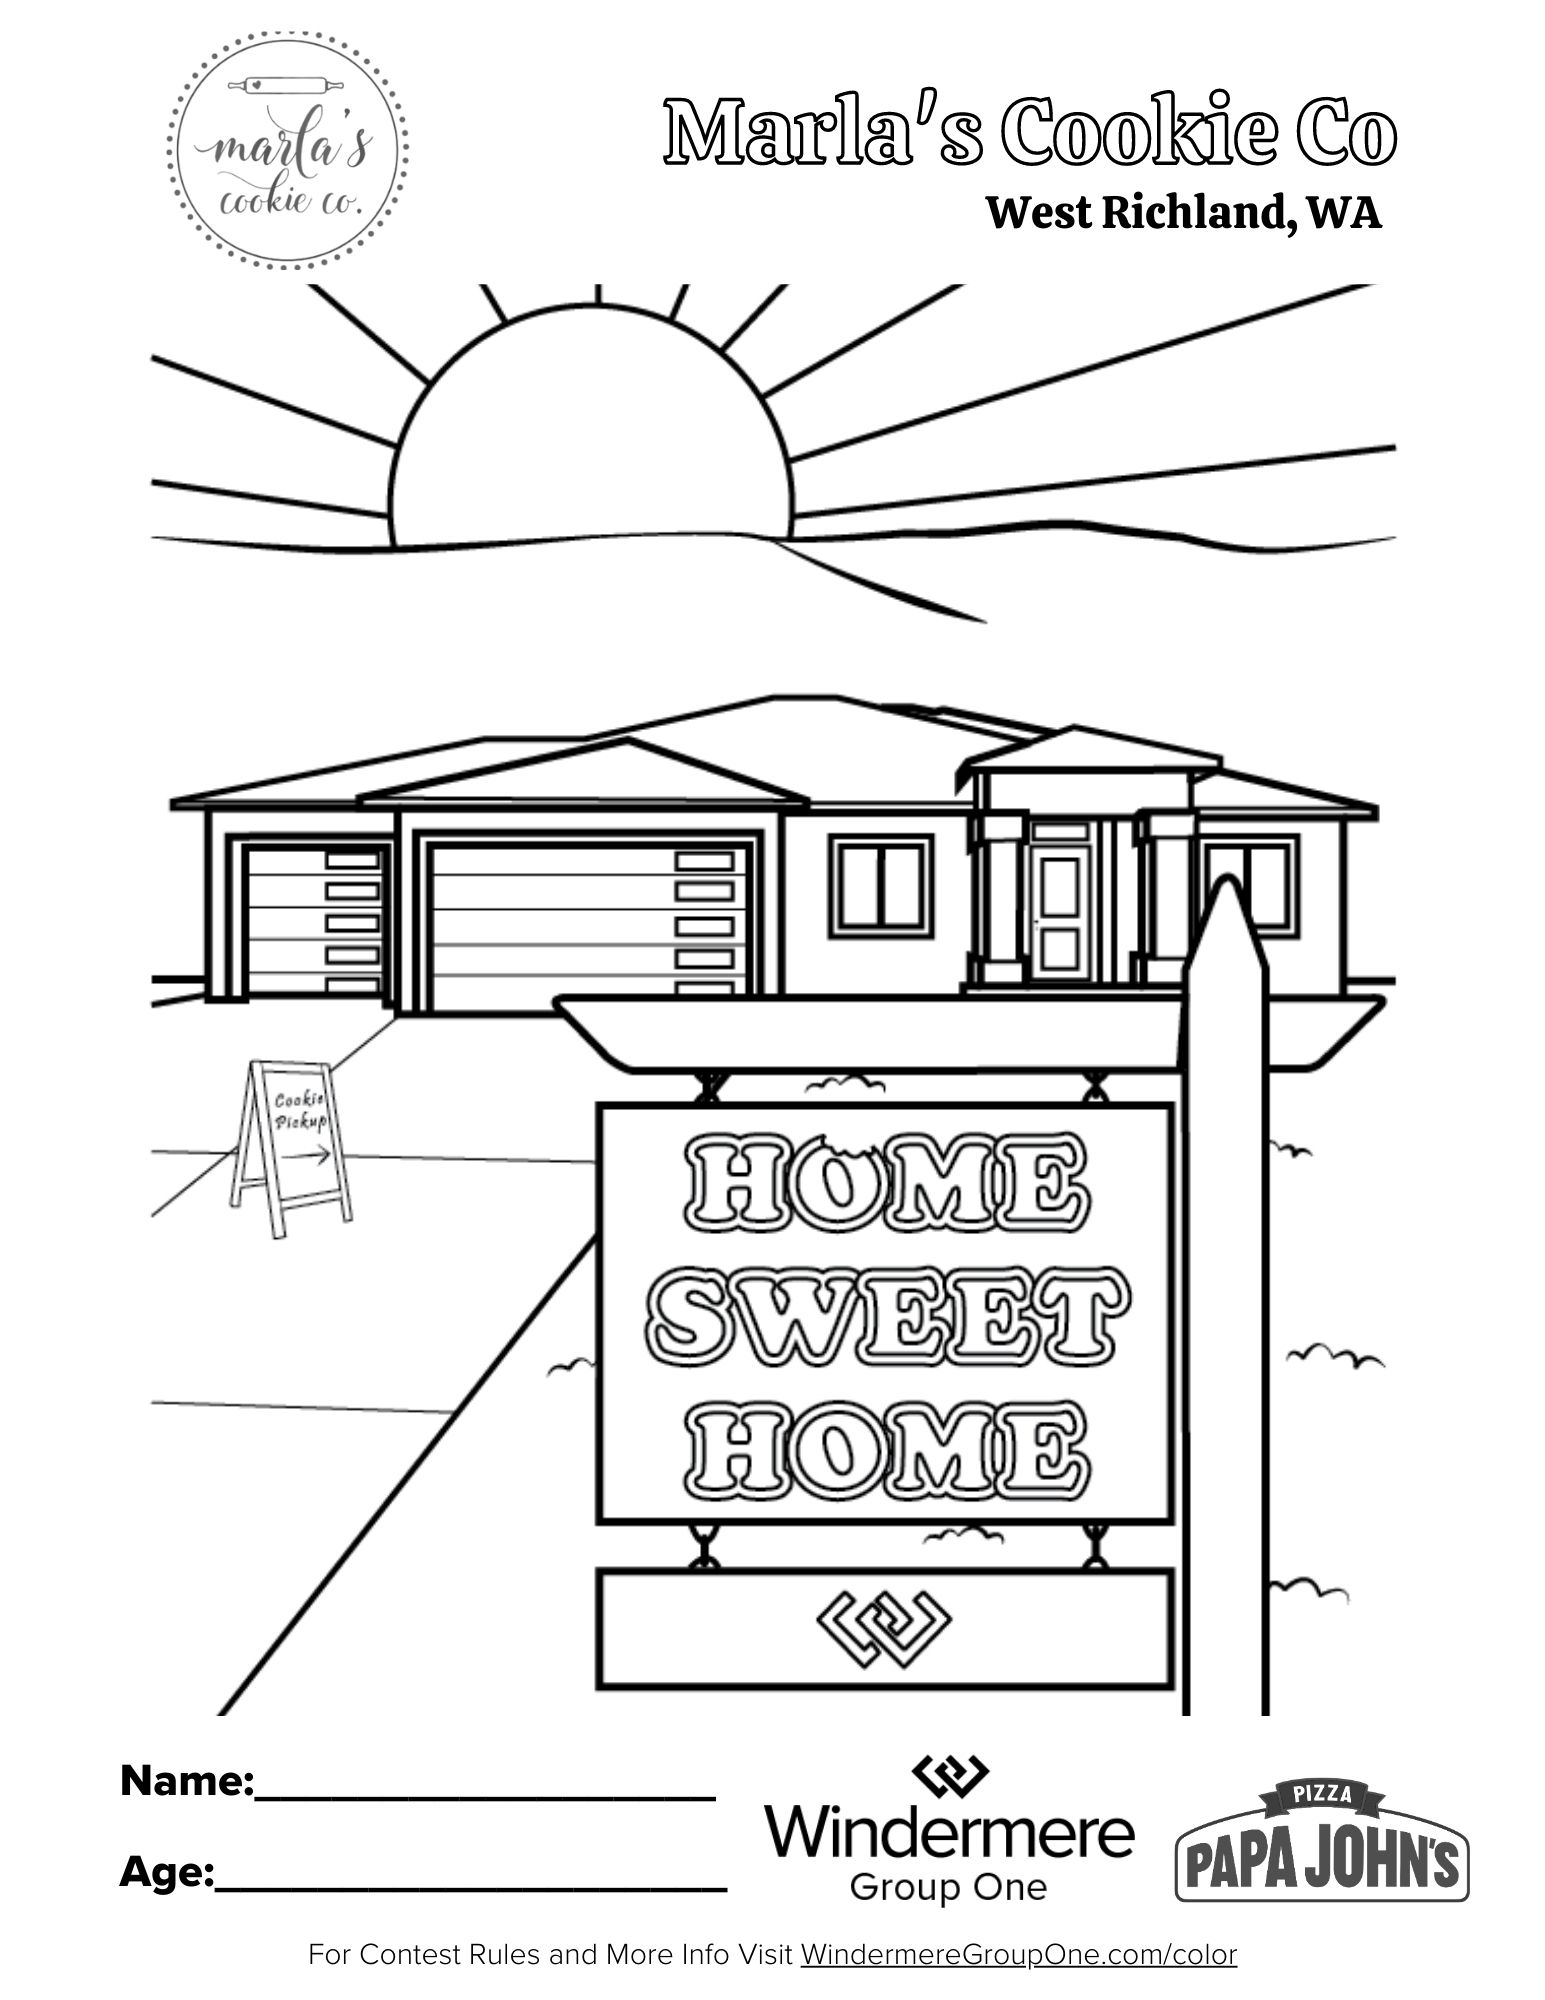 Marla's Cookie Co Coloring Page